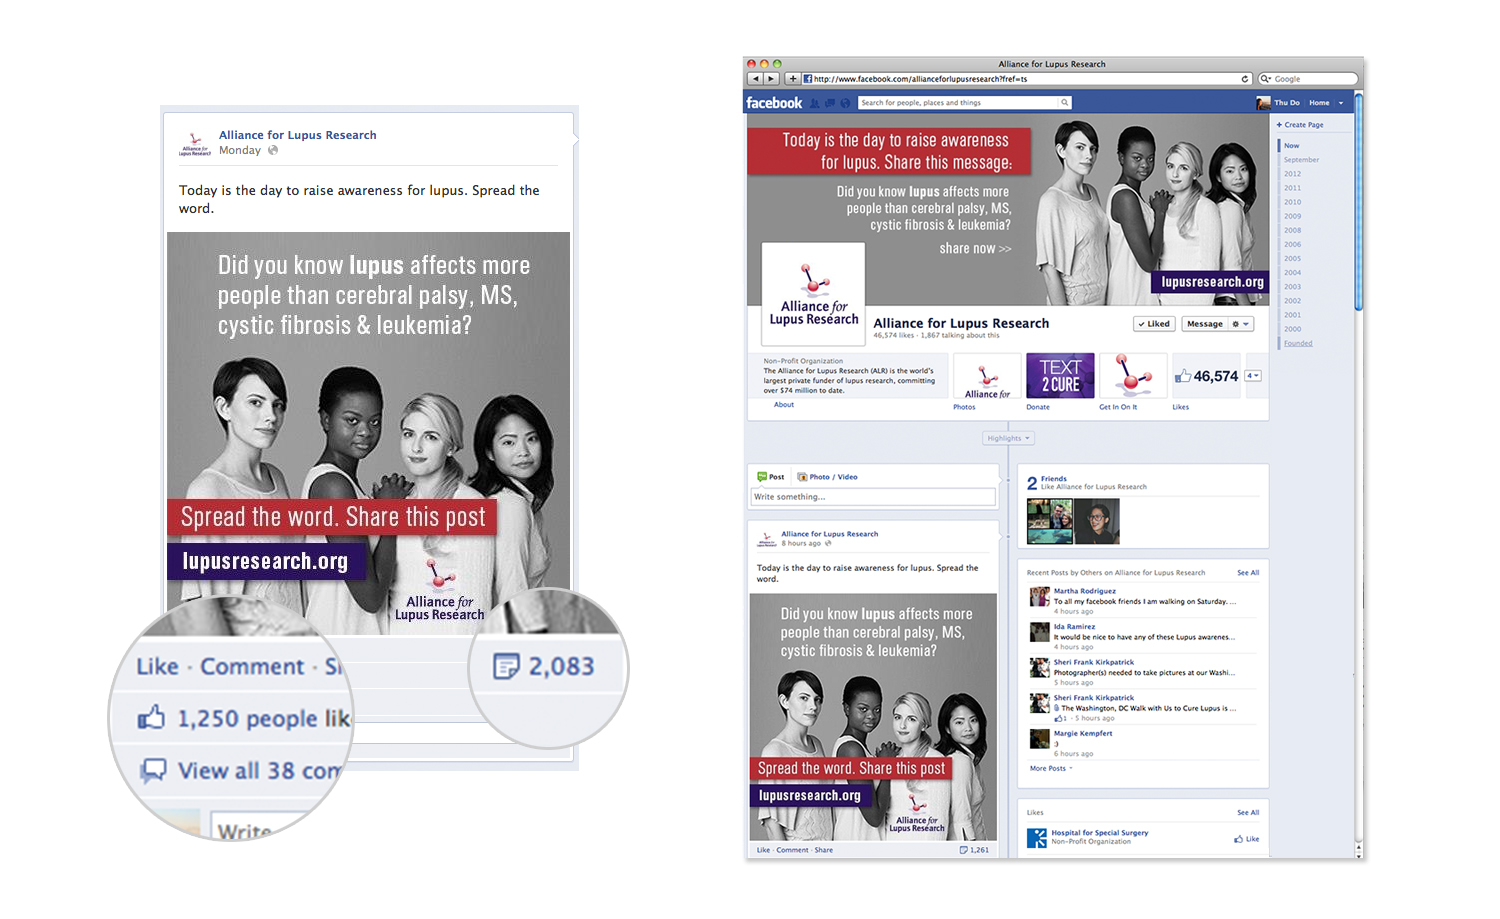 Alliance for Lupus Research Social Media Campaign Facebook